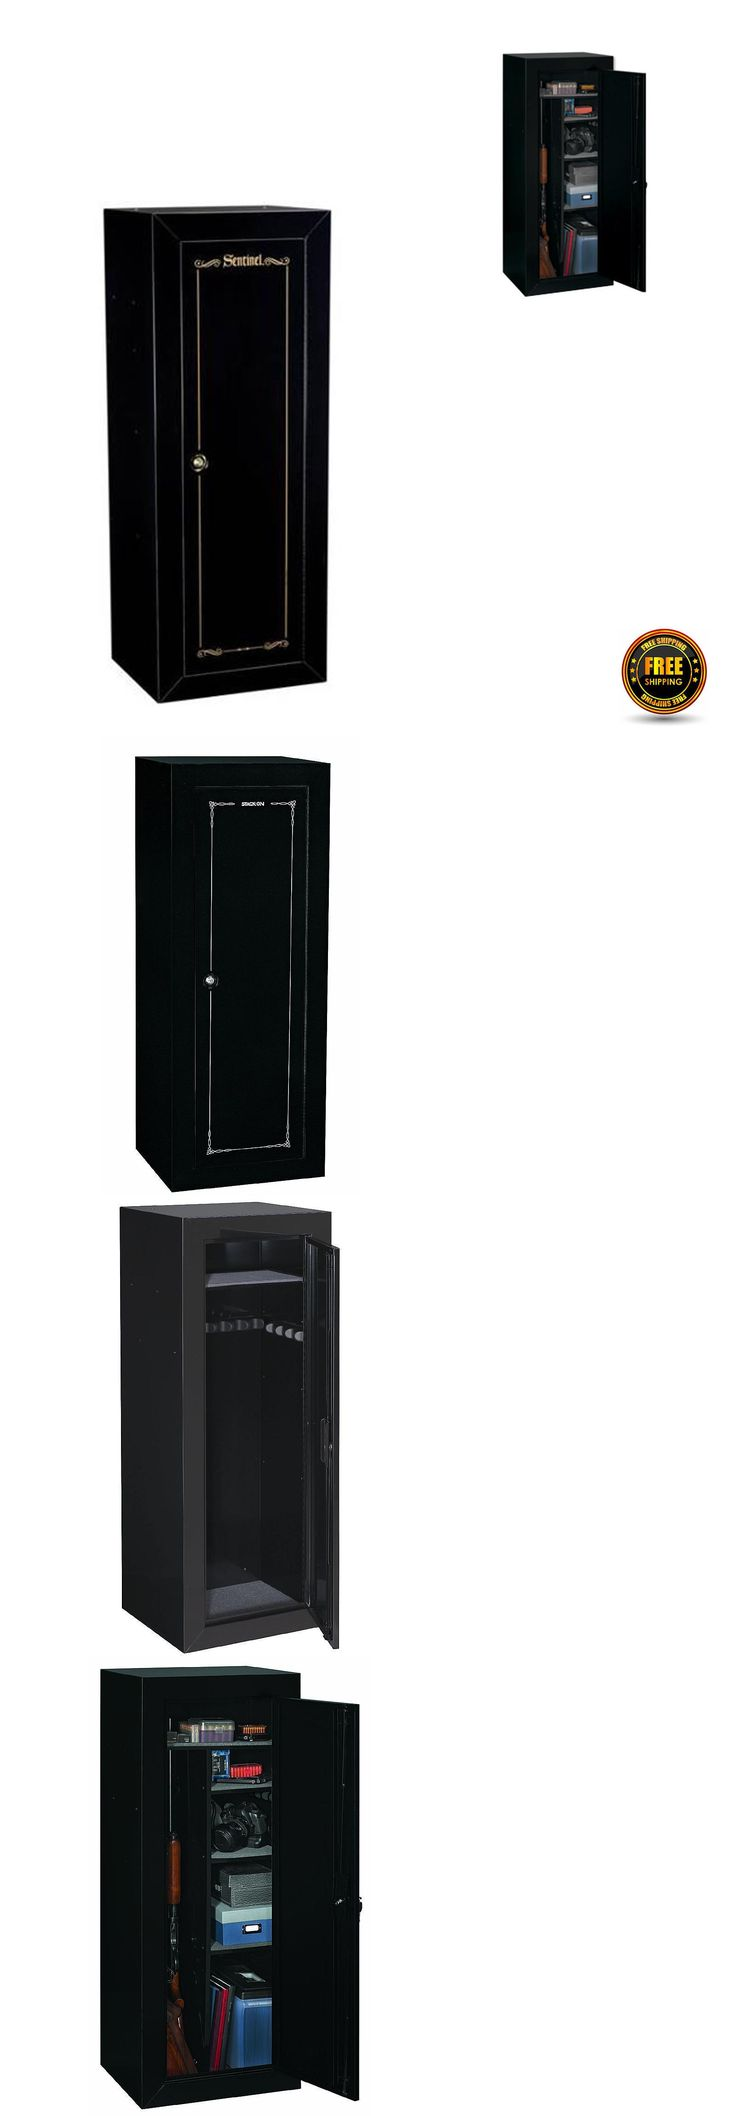 Cabinets and Safes 177877: Stack On Gun Safes And Vaults For Home 18 Steel Security Cabinet Storage Rifle -> BUY IT NOW ONLY: $211.96 on eBay!